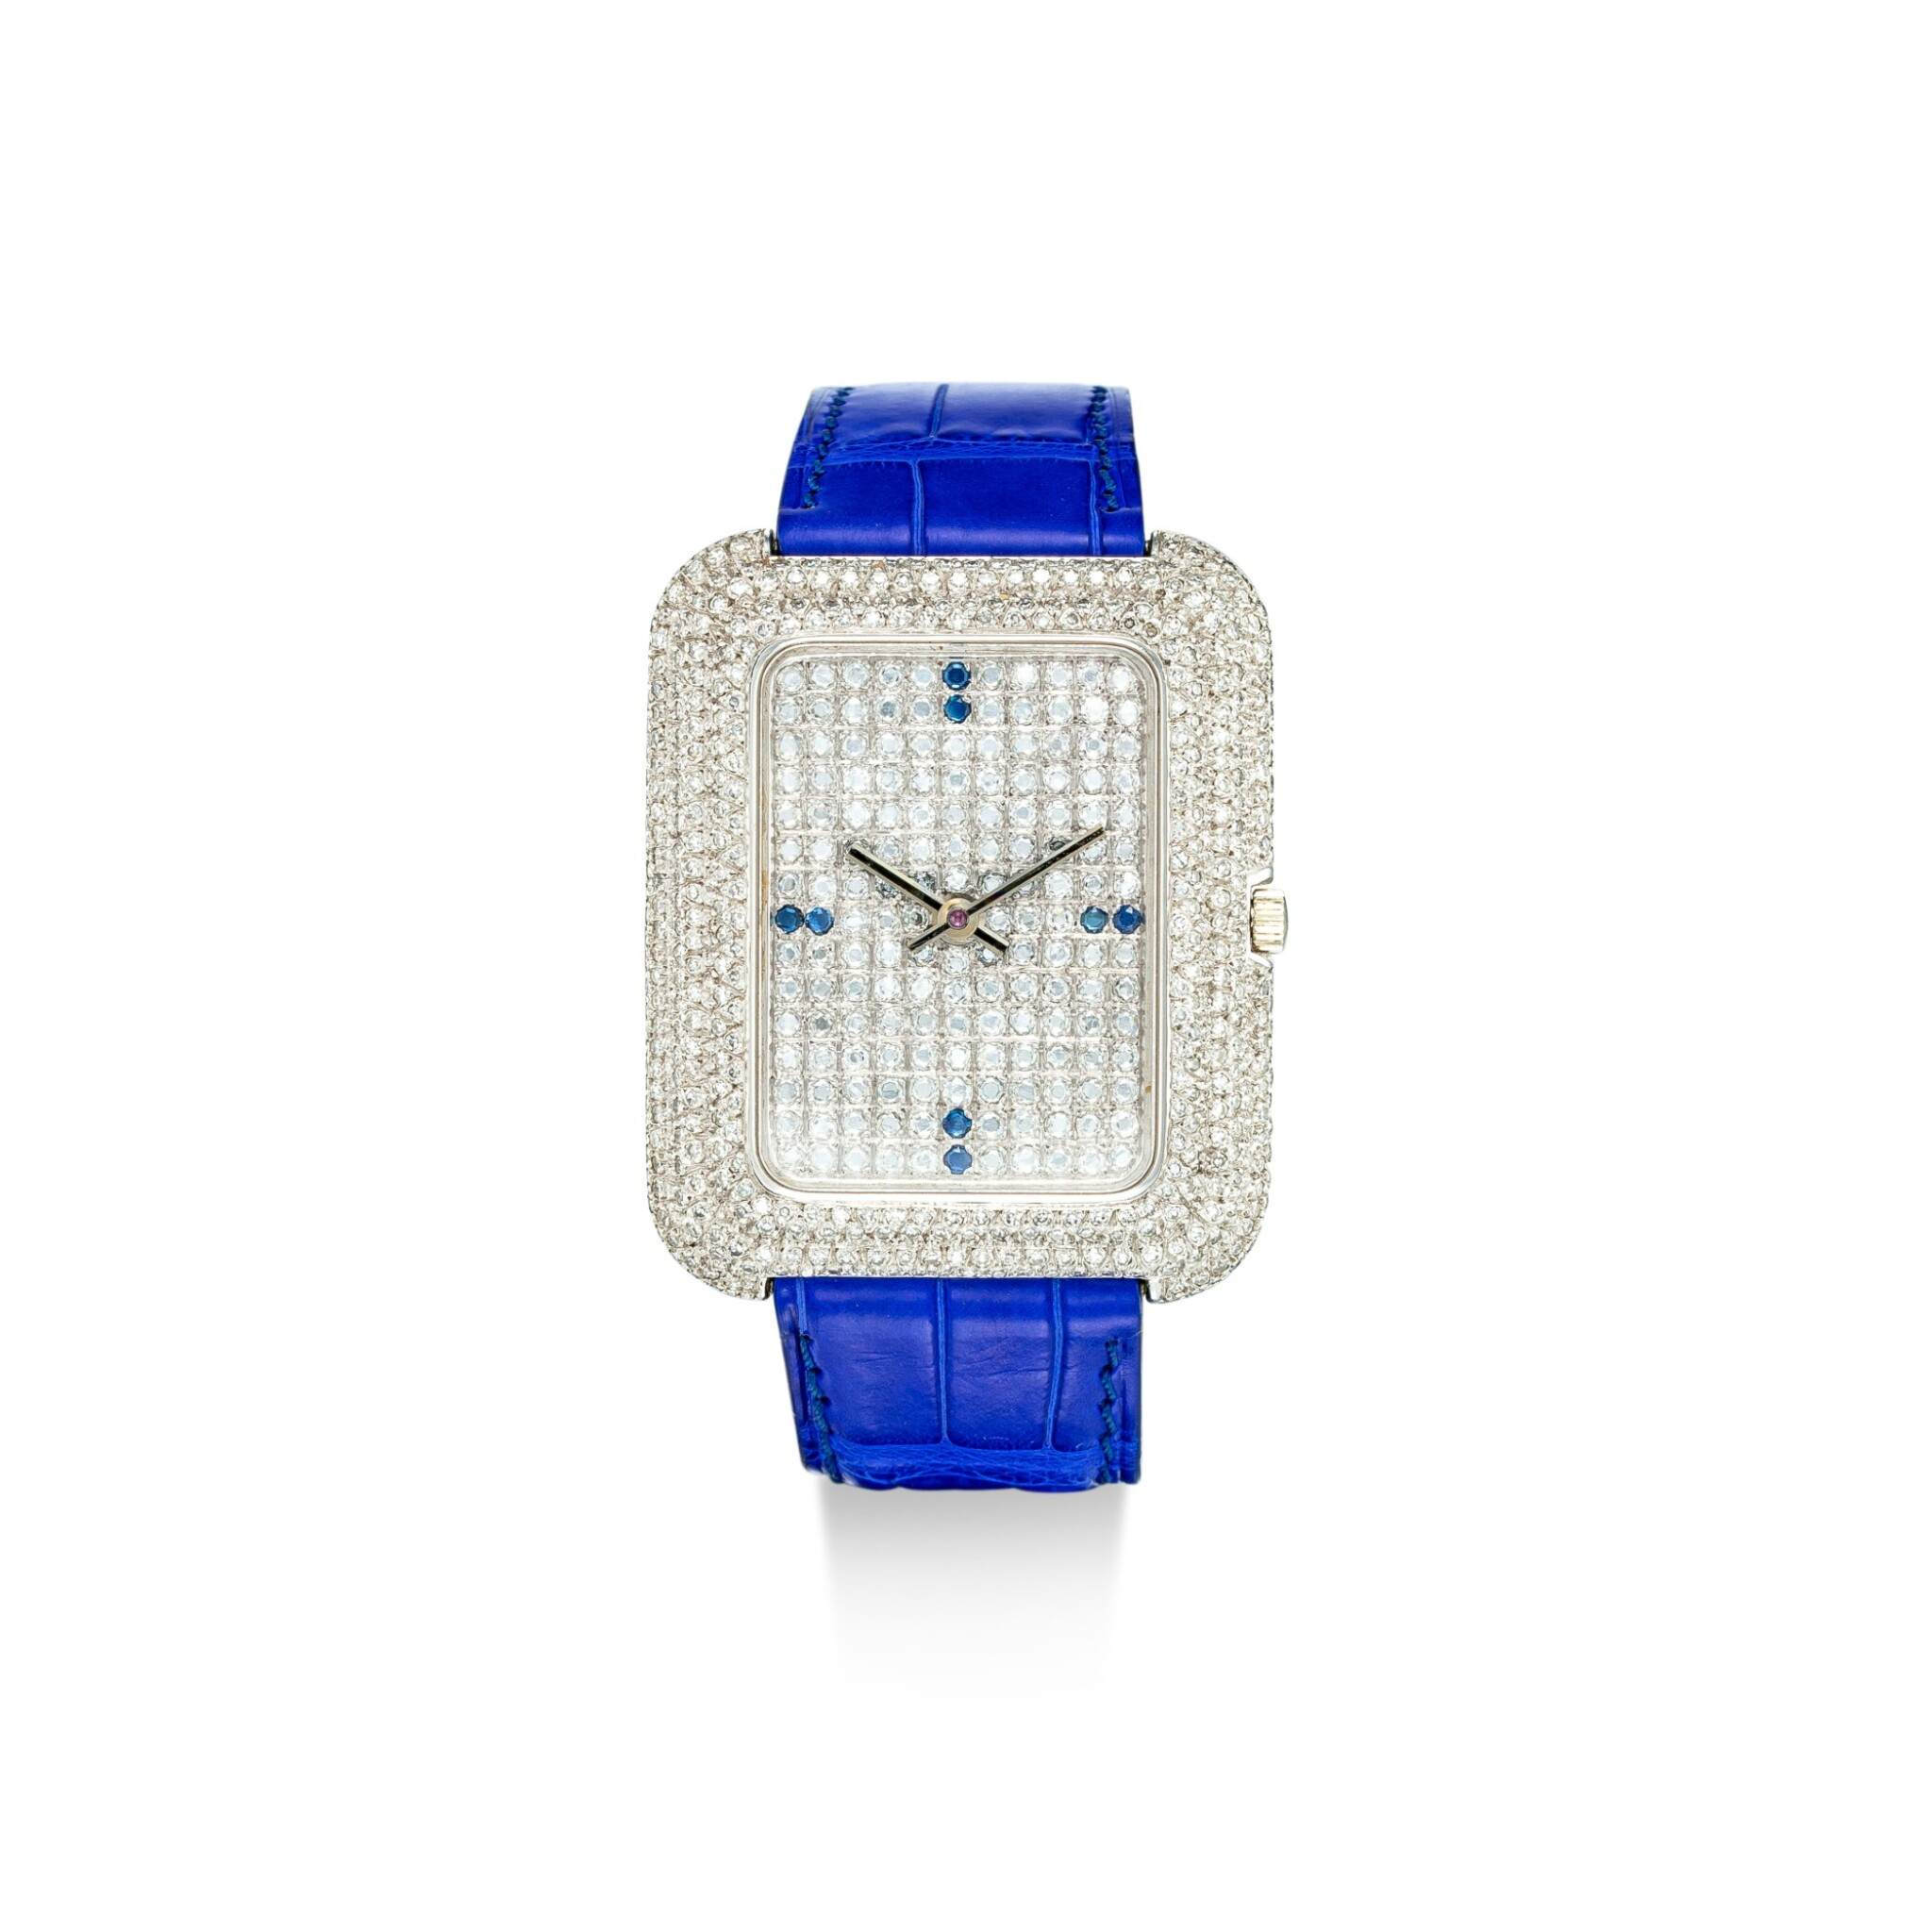 View full screen - View 1 of Lot 1106. PIAGET   REFERENCE 14105, A WHITE GOLD, DIAMOND AND SAPPHIRE-SET WRISTWATCH WITH BETA 21 MOVEMENT, CIRCA 1970.